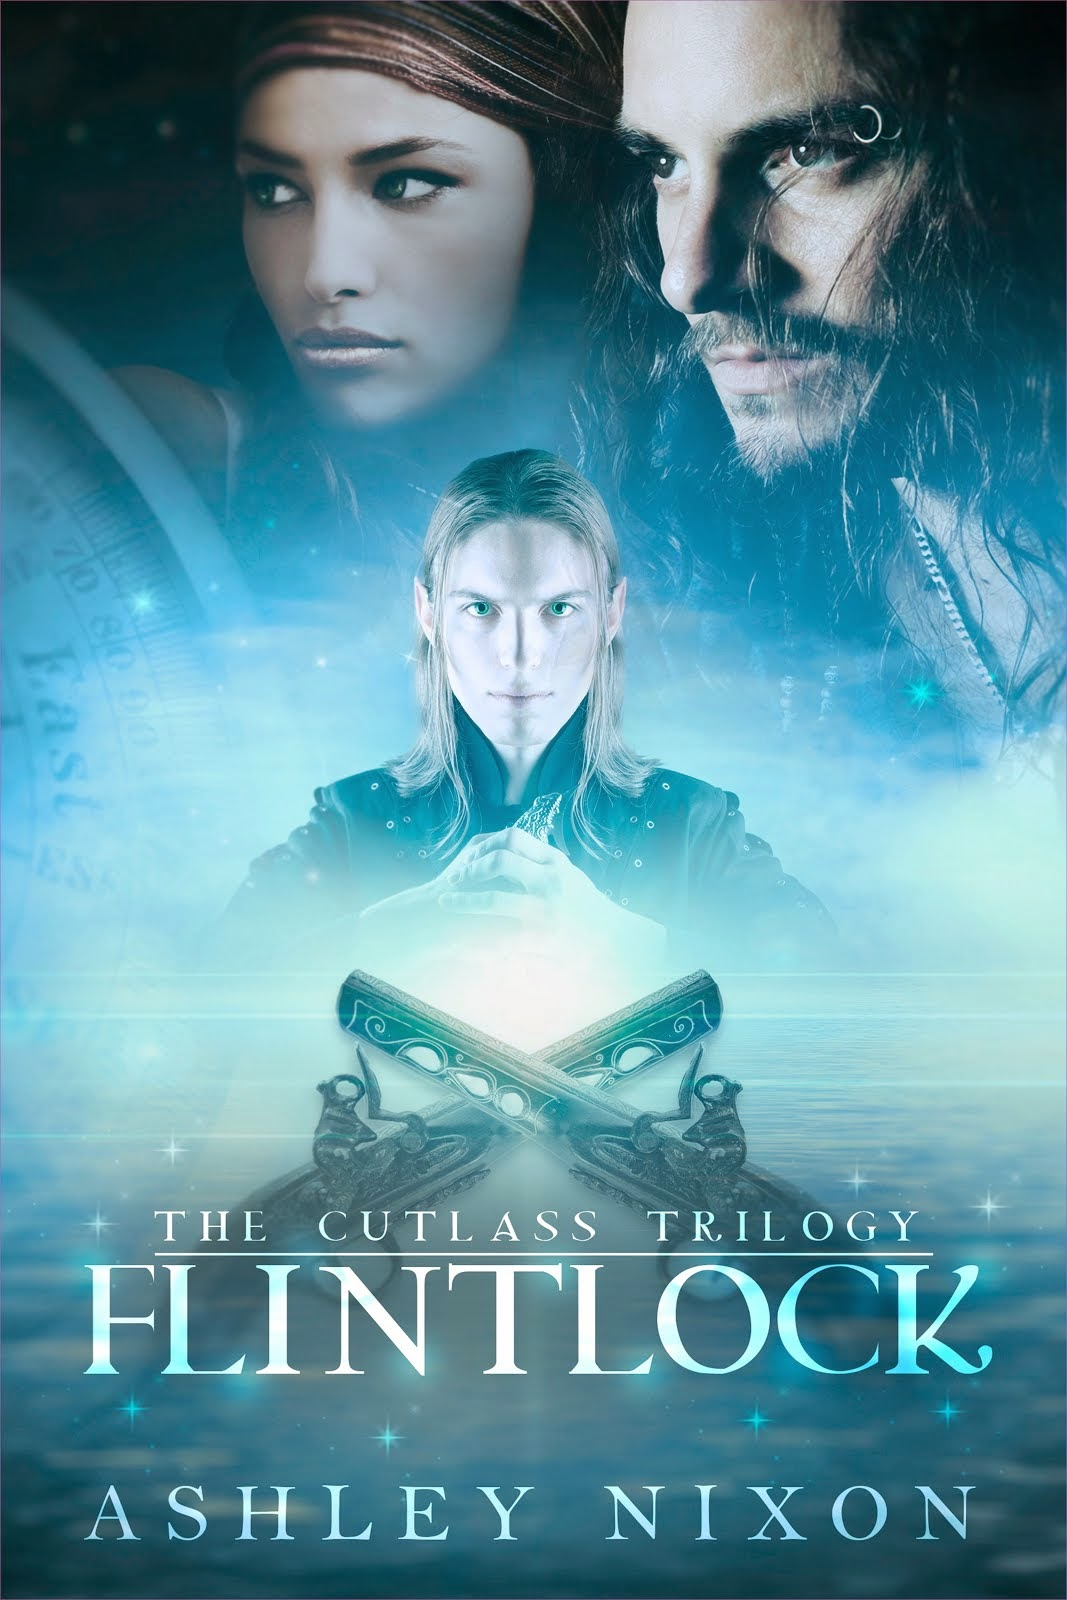 FLINTLOCK on AMAZON